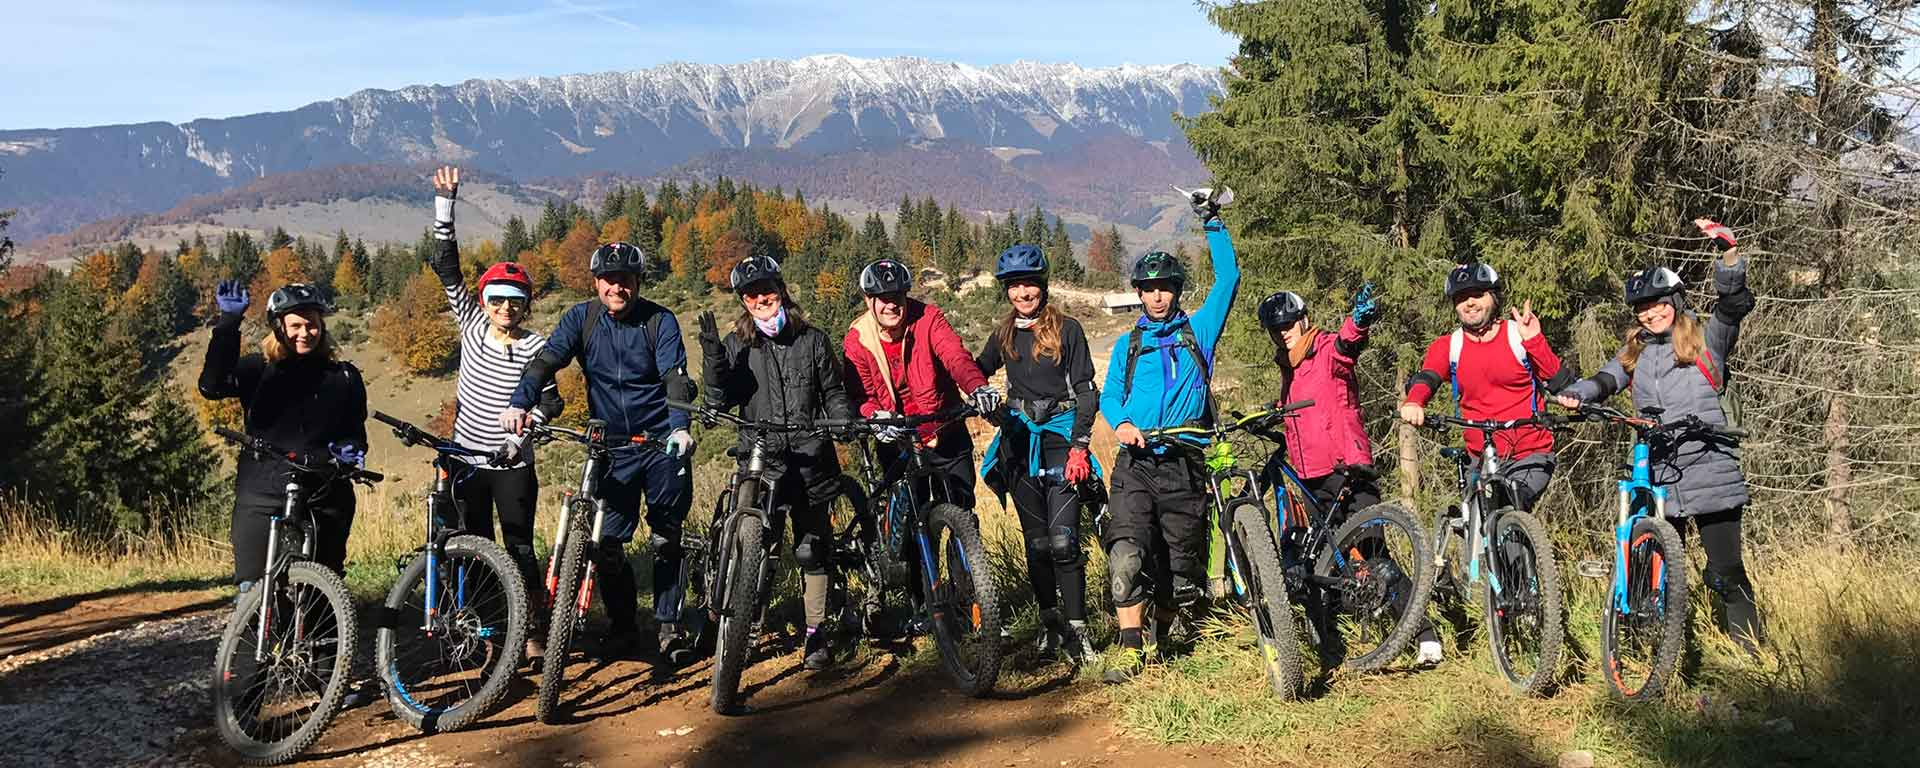 , Tura Mountainbike in Bucegi